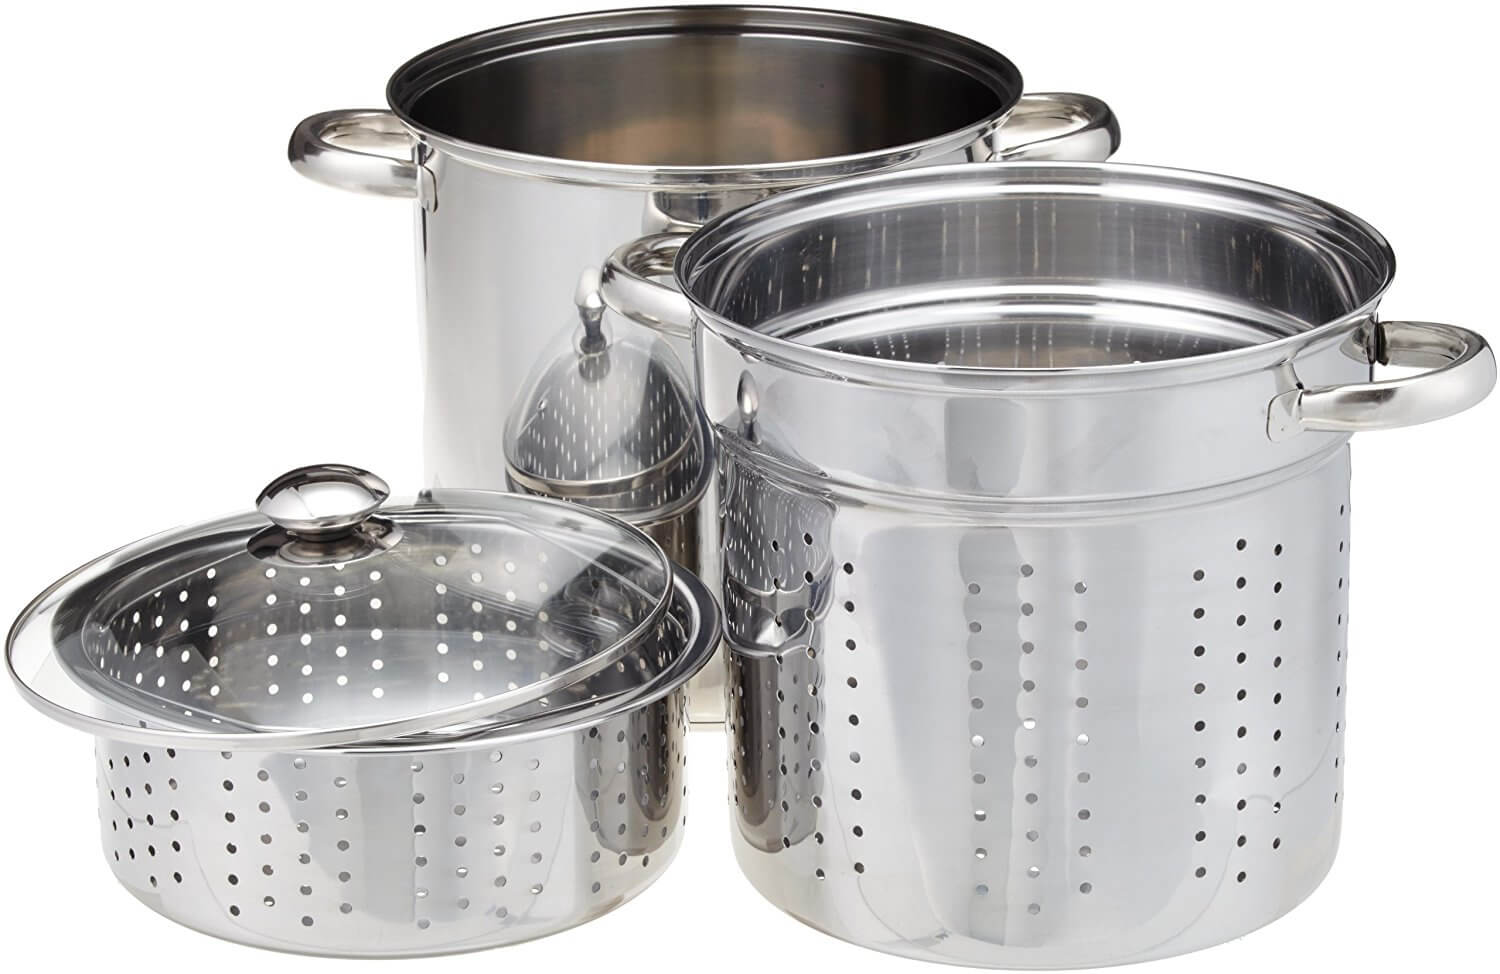 Excelsteel 4 Piece Multi-Cookware Set